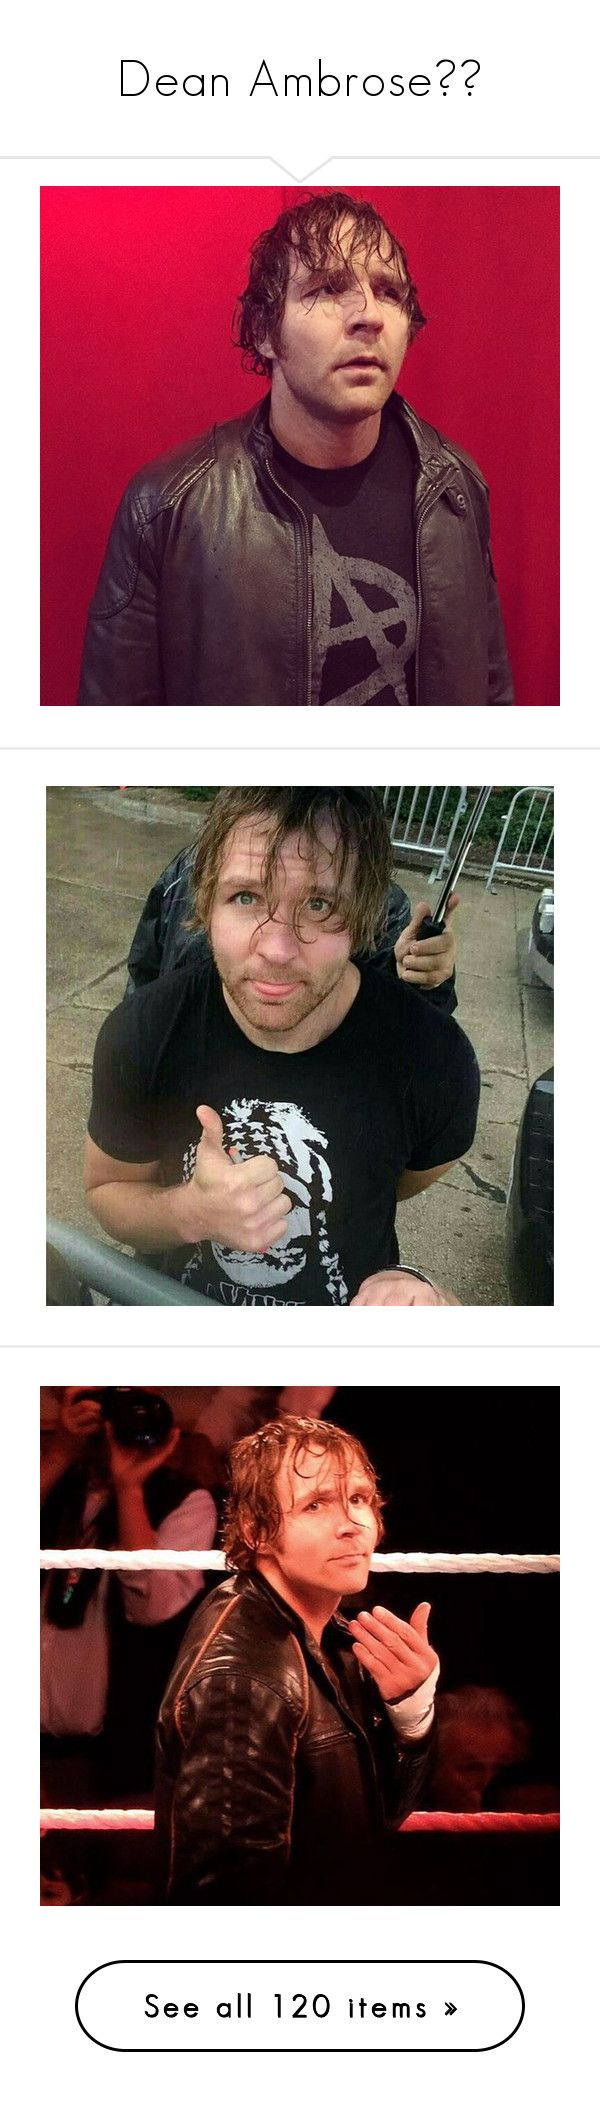 """""""Dean Ambrose❤"""" by spiderxmanx39 ❤ liked on Polyvore featuring dean ambrose, home, home decor, wwe, tops, shirts, crop tops, burgundy crop top, high neck sleeveless top and sleeveless turtleneck"""